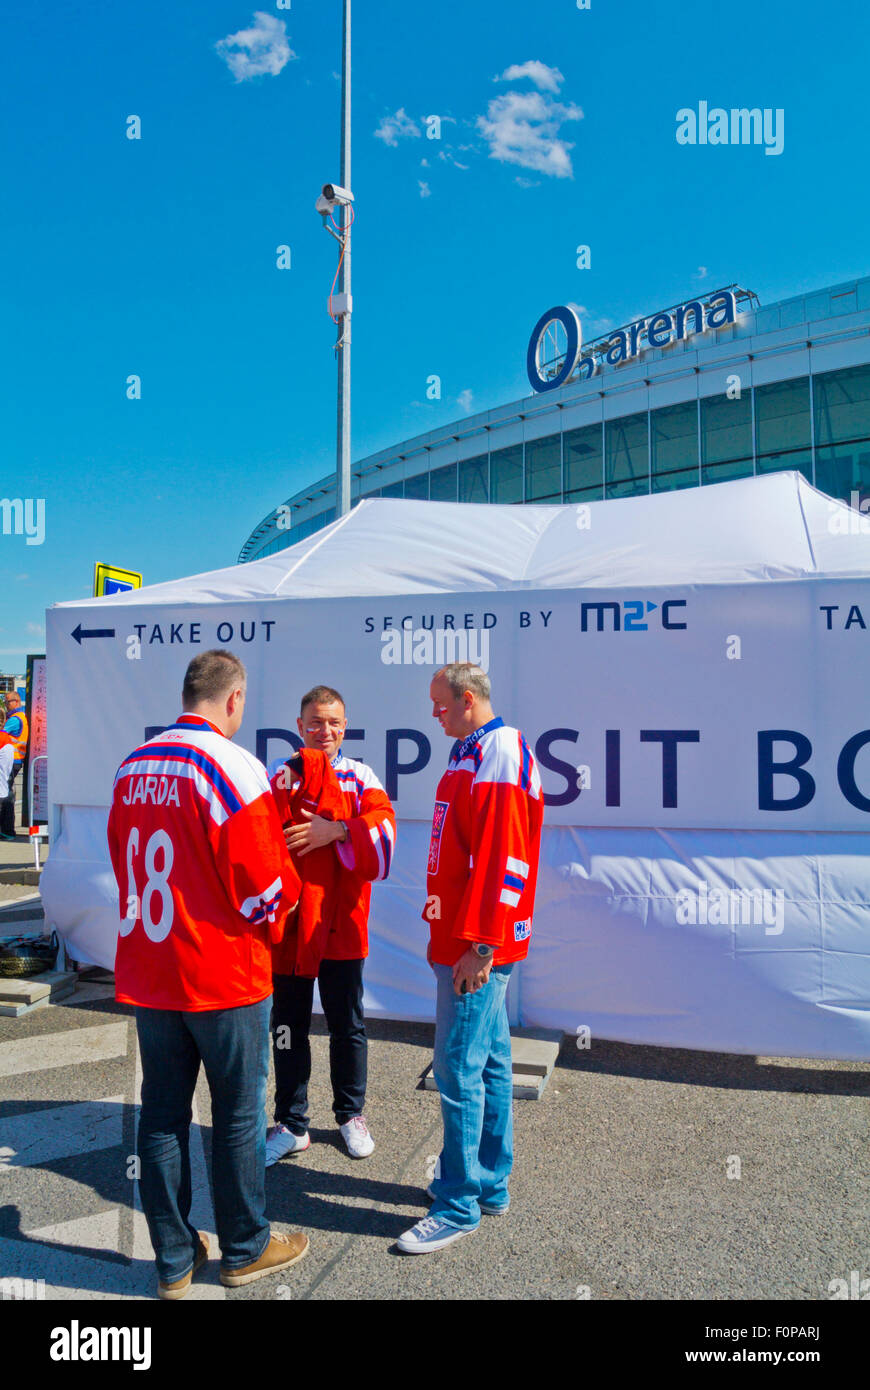 Fans outside O2 arena, during 2015 Ice Hockey World Championships, Ceskomoravska, Prague, Czech Republic, Europe - Stock Image